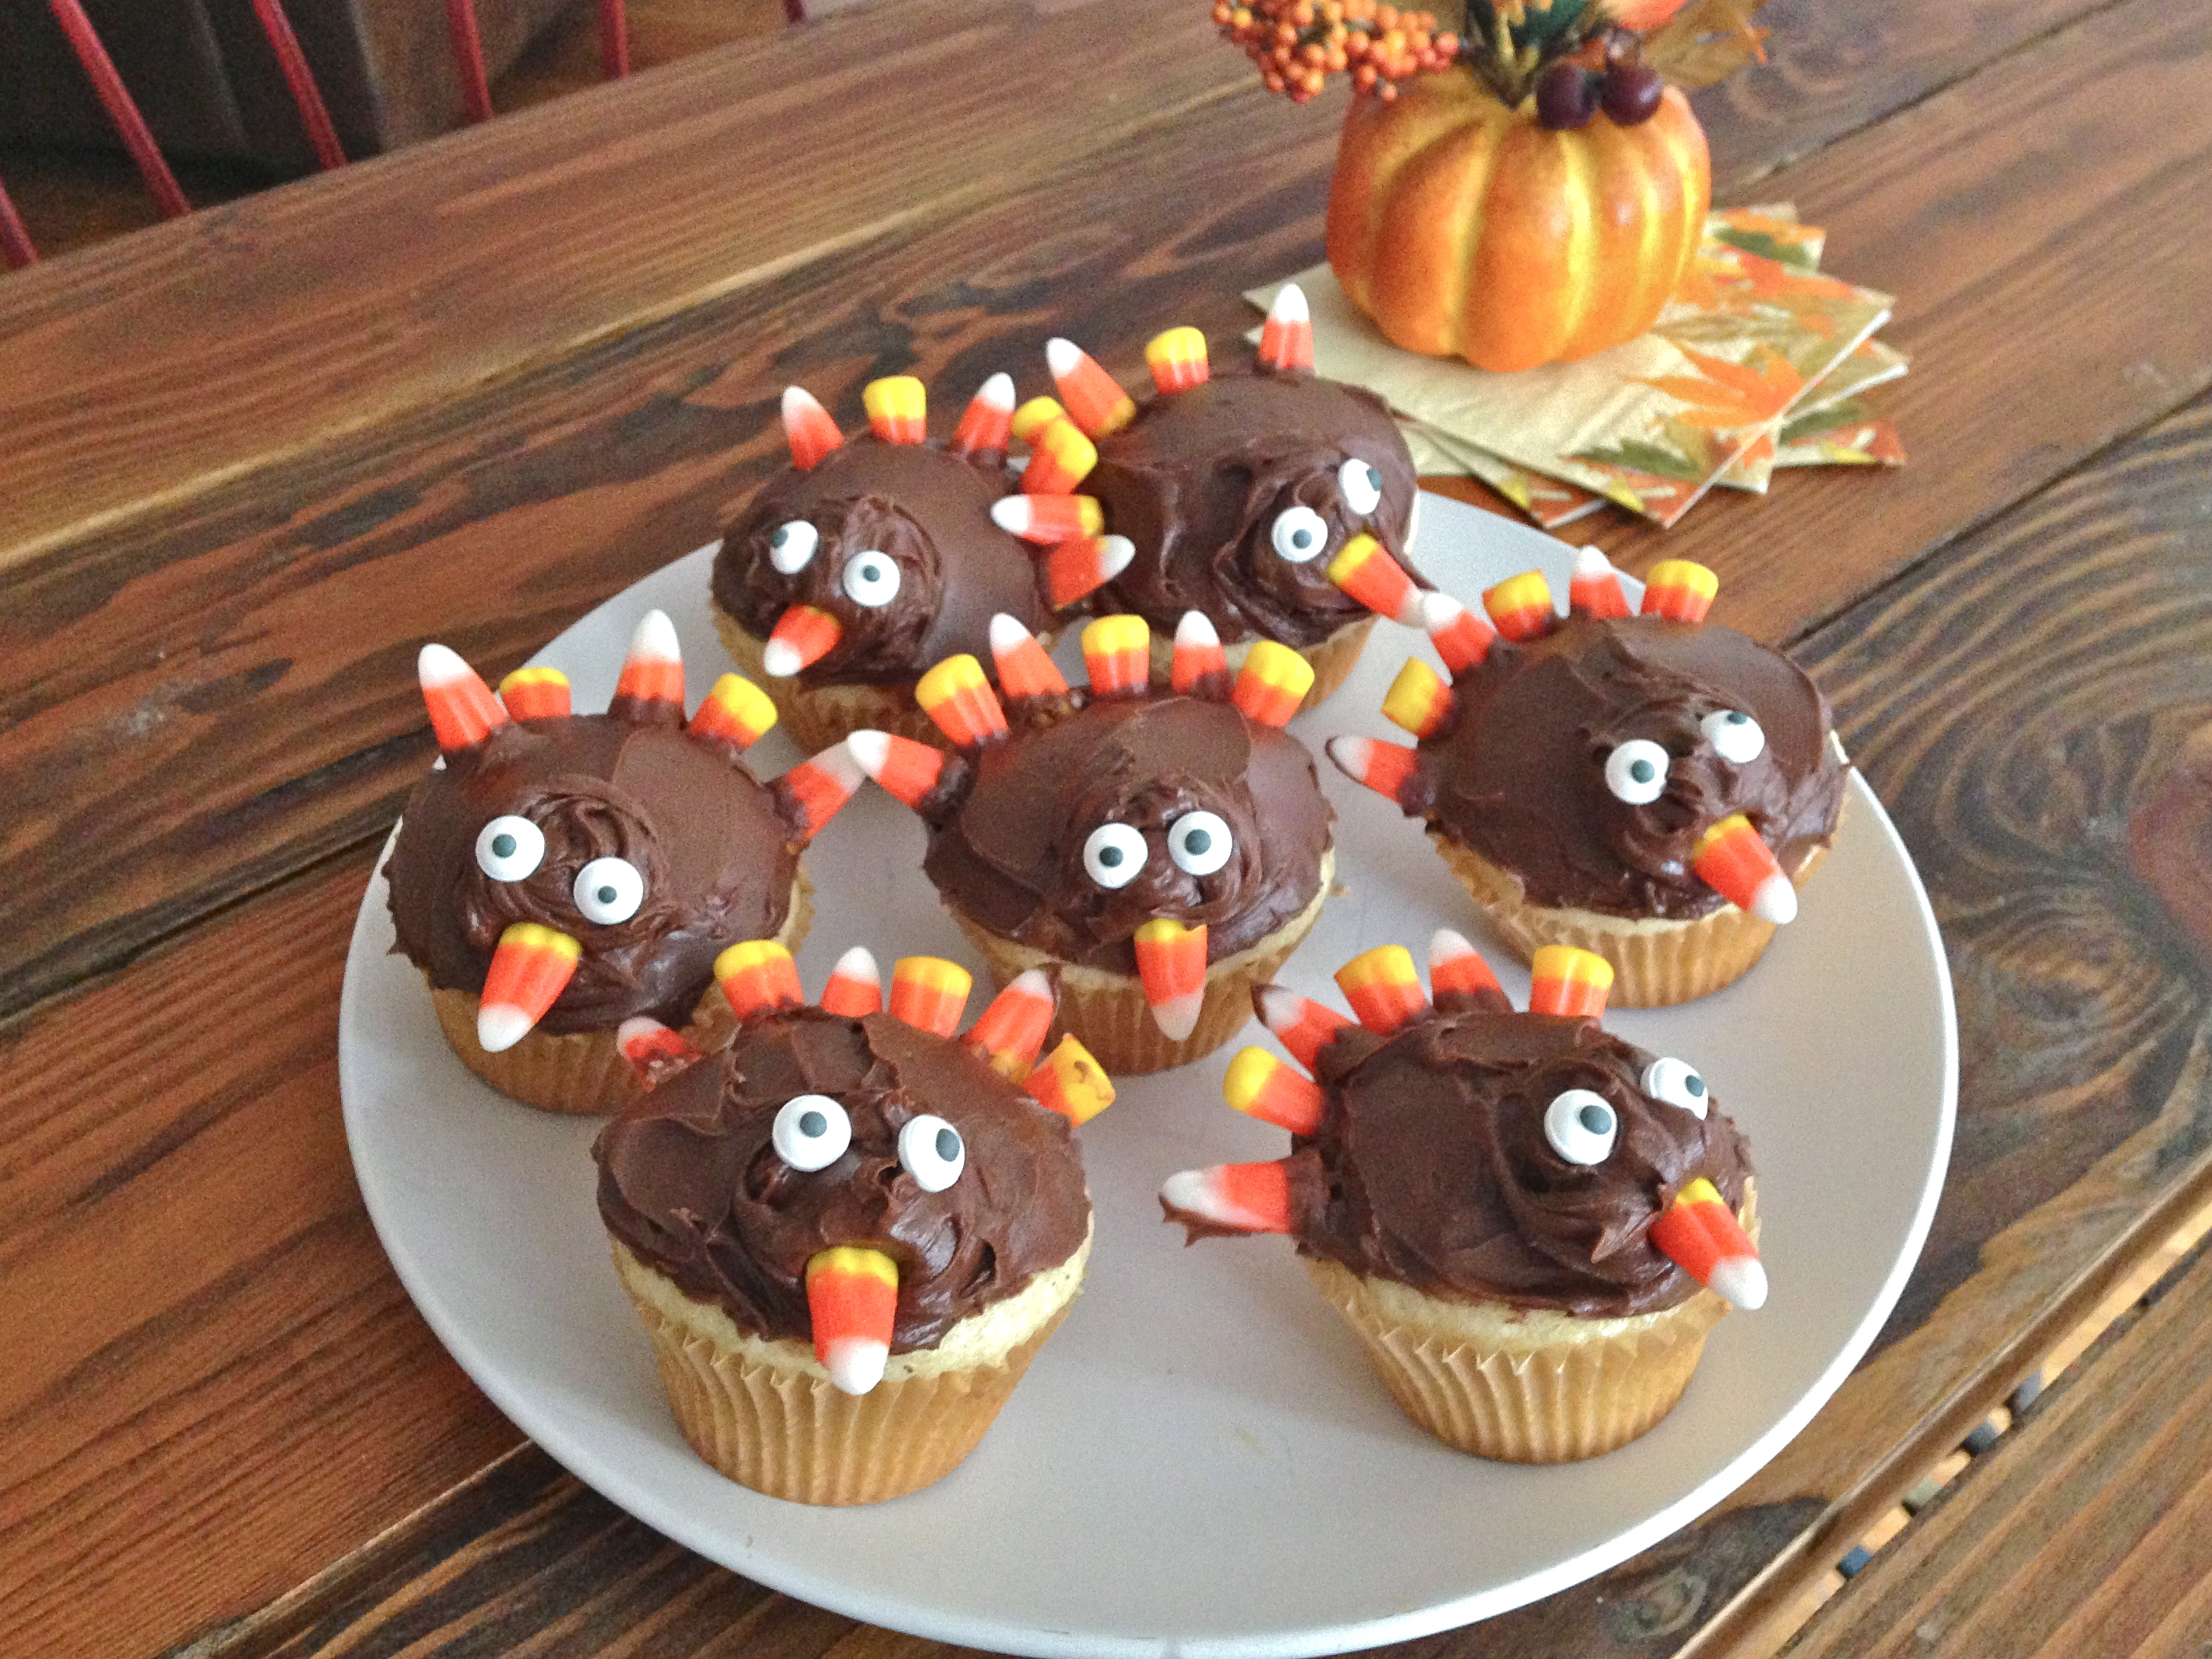 Easy Turkey-Shaped Cupcakes for Thanksgiving